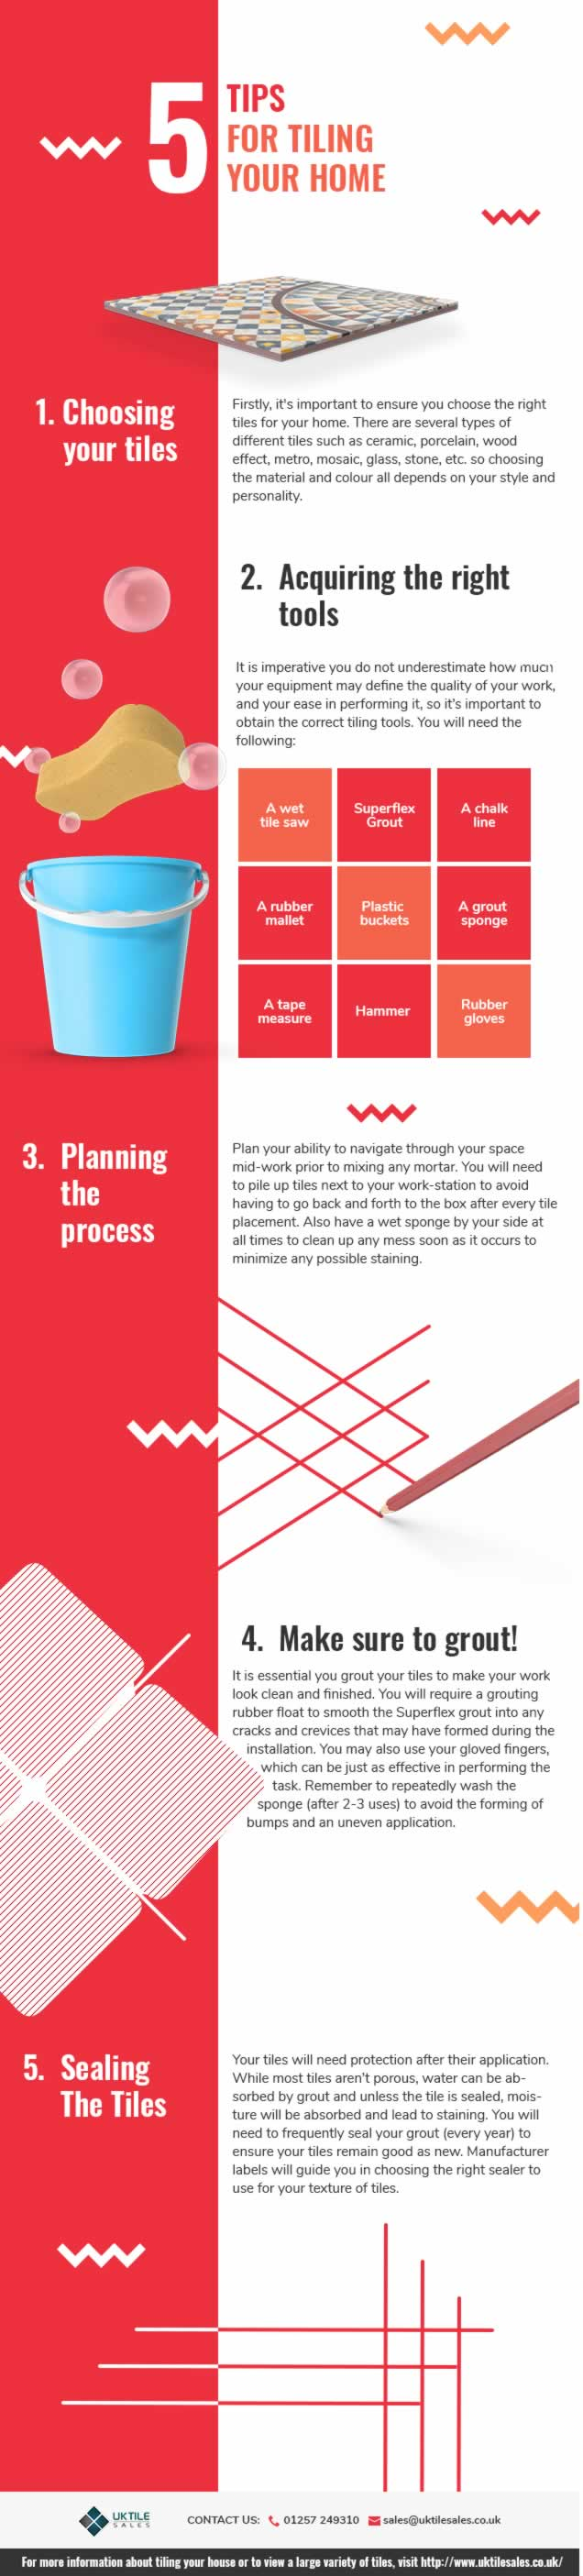 Top tips for tiling your home - infographic